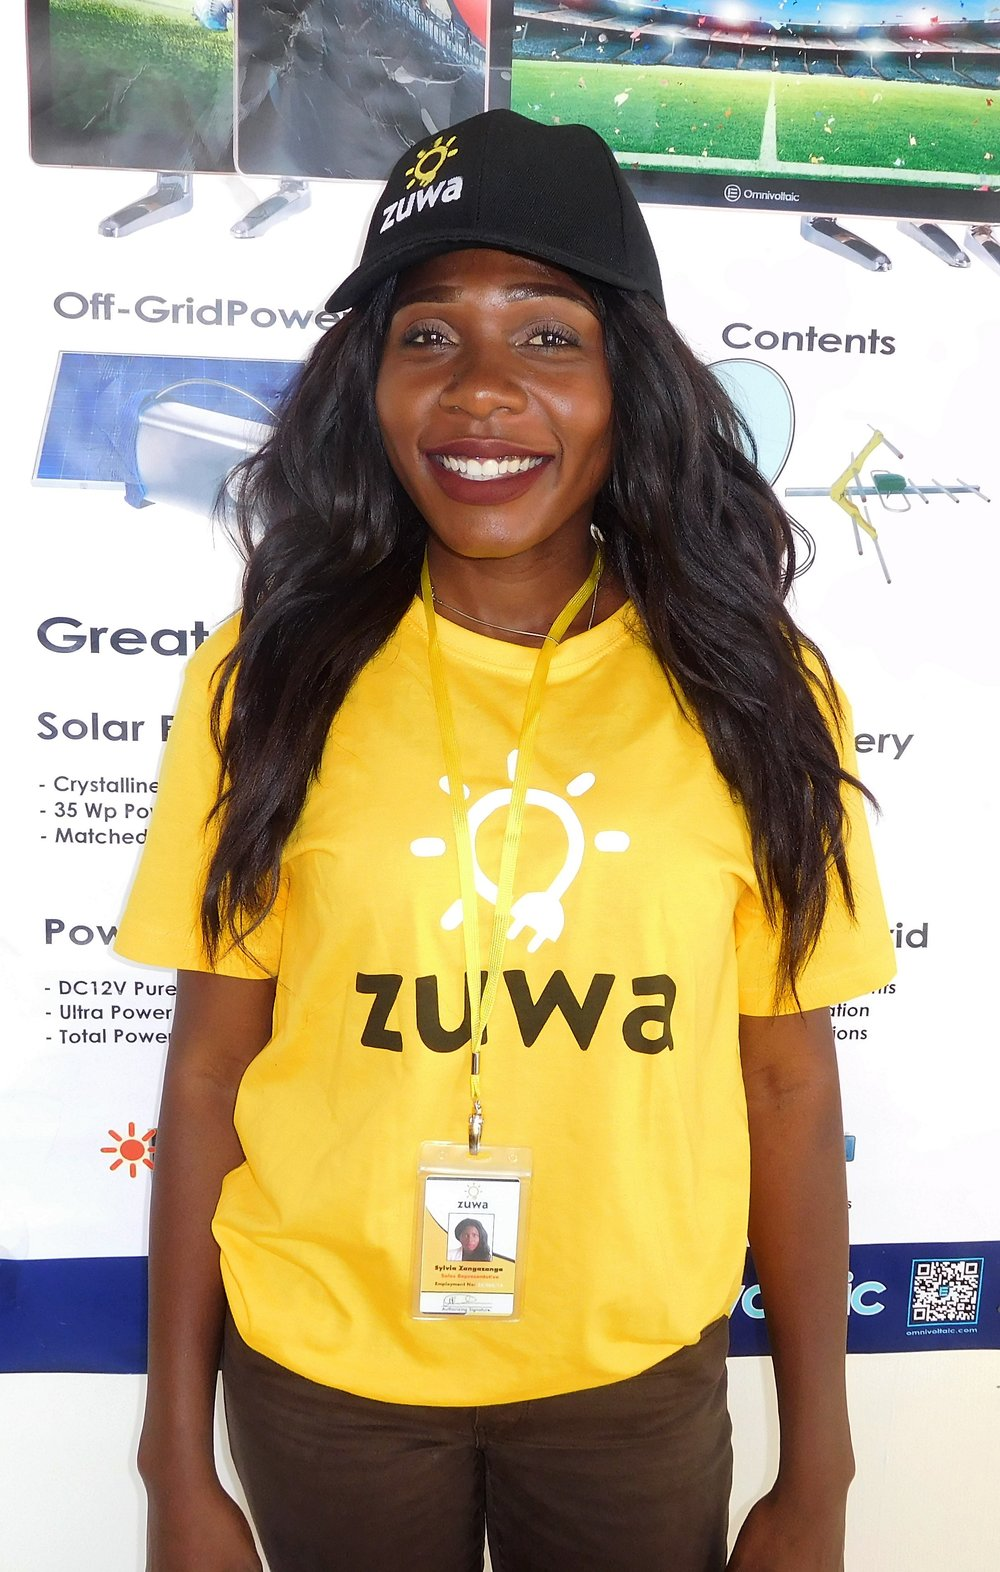 """Sylvia Zangazanga - """"I am a business lady who deals in sewing and selling of baby bedding in Lilongwe. I joined Zuwa Energy as a sales representative and instantly knew I had to become an agent as well. I have always had a negative attitude about solar electricity but Zuwa Energy changed my perspective. It offers reliable solar electricity and I look at becoming its agent as me being part of distributing greatness to the world!"""""""